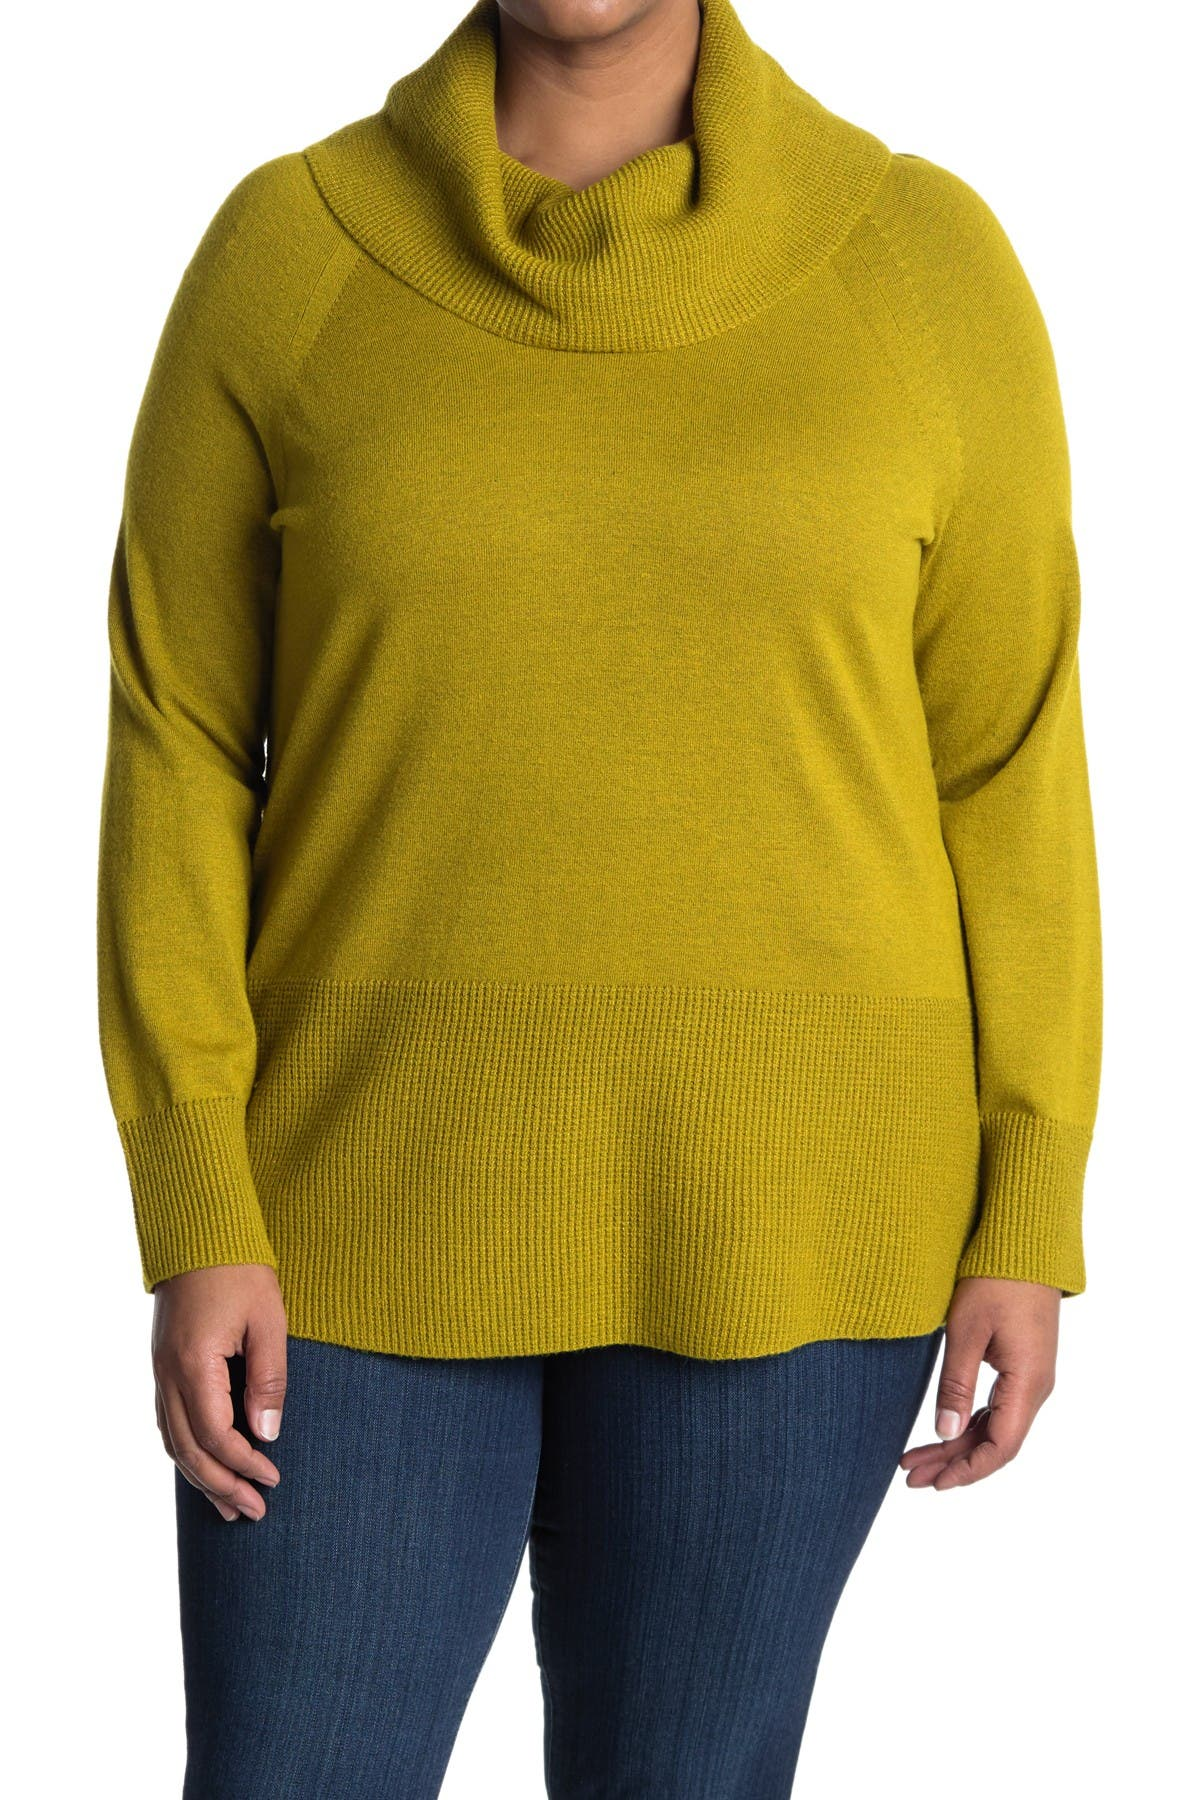 Image of Cyrus Long Cowl Neck Sweater With Textured Trim